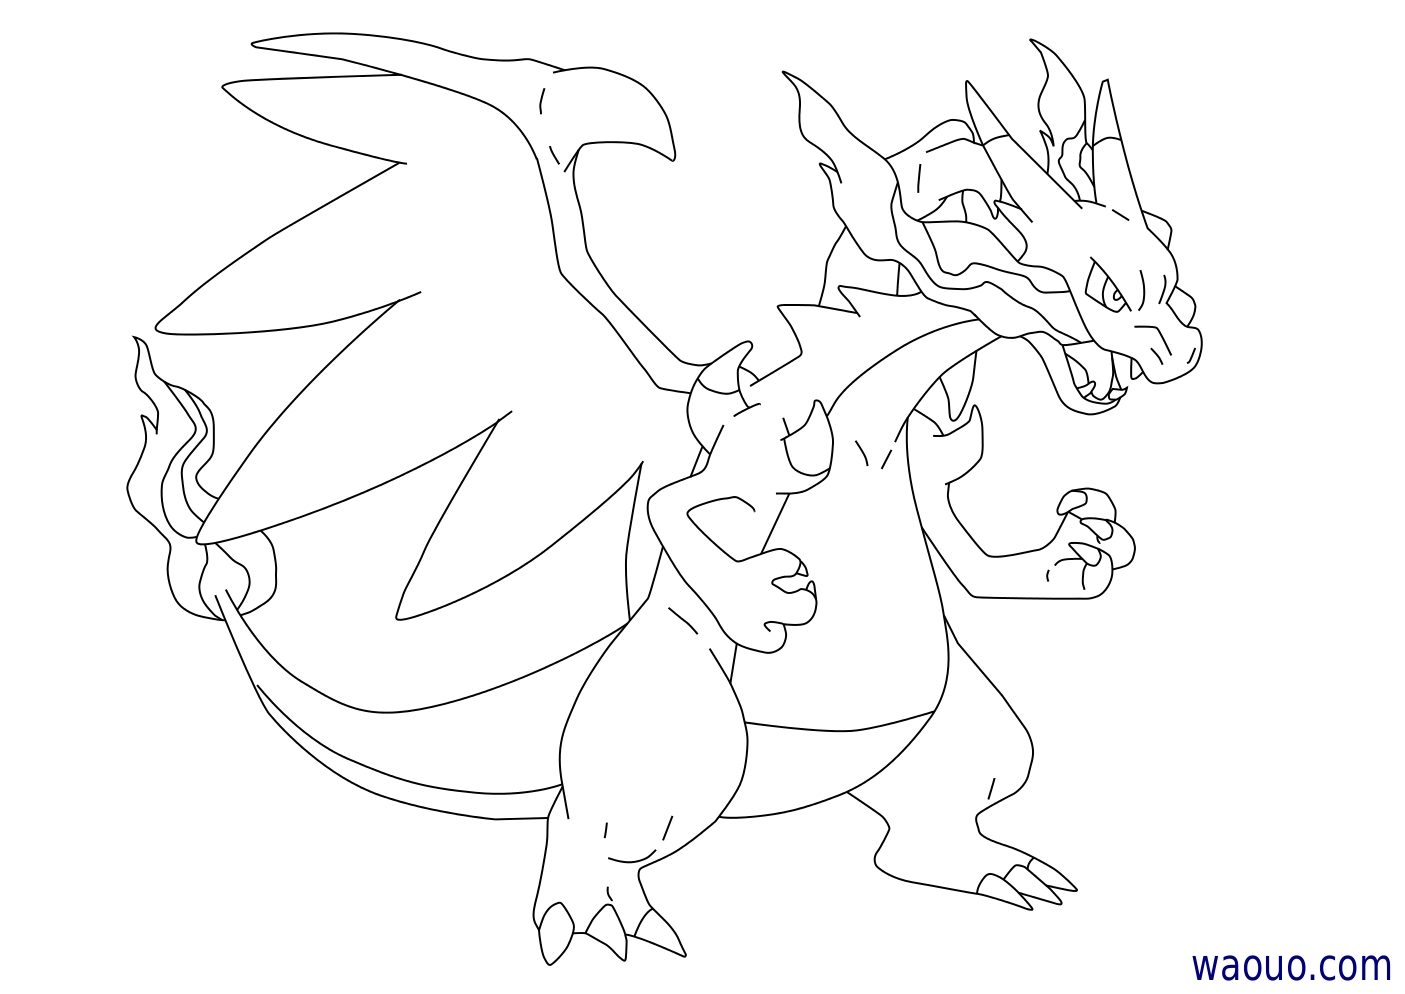 39 Dessins De Coloriage Pokemon Mega Evolution à Imprimer